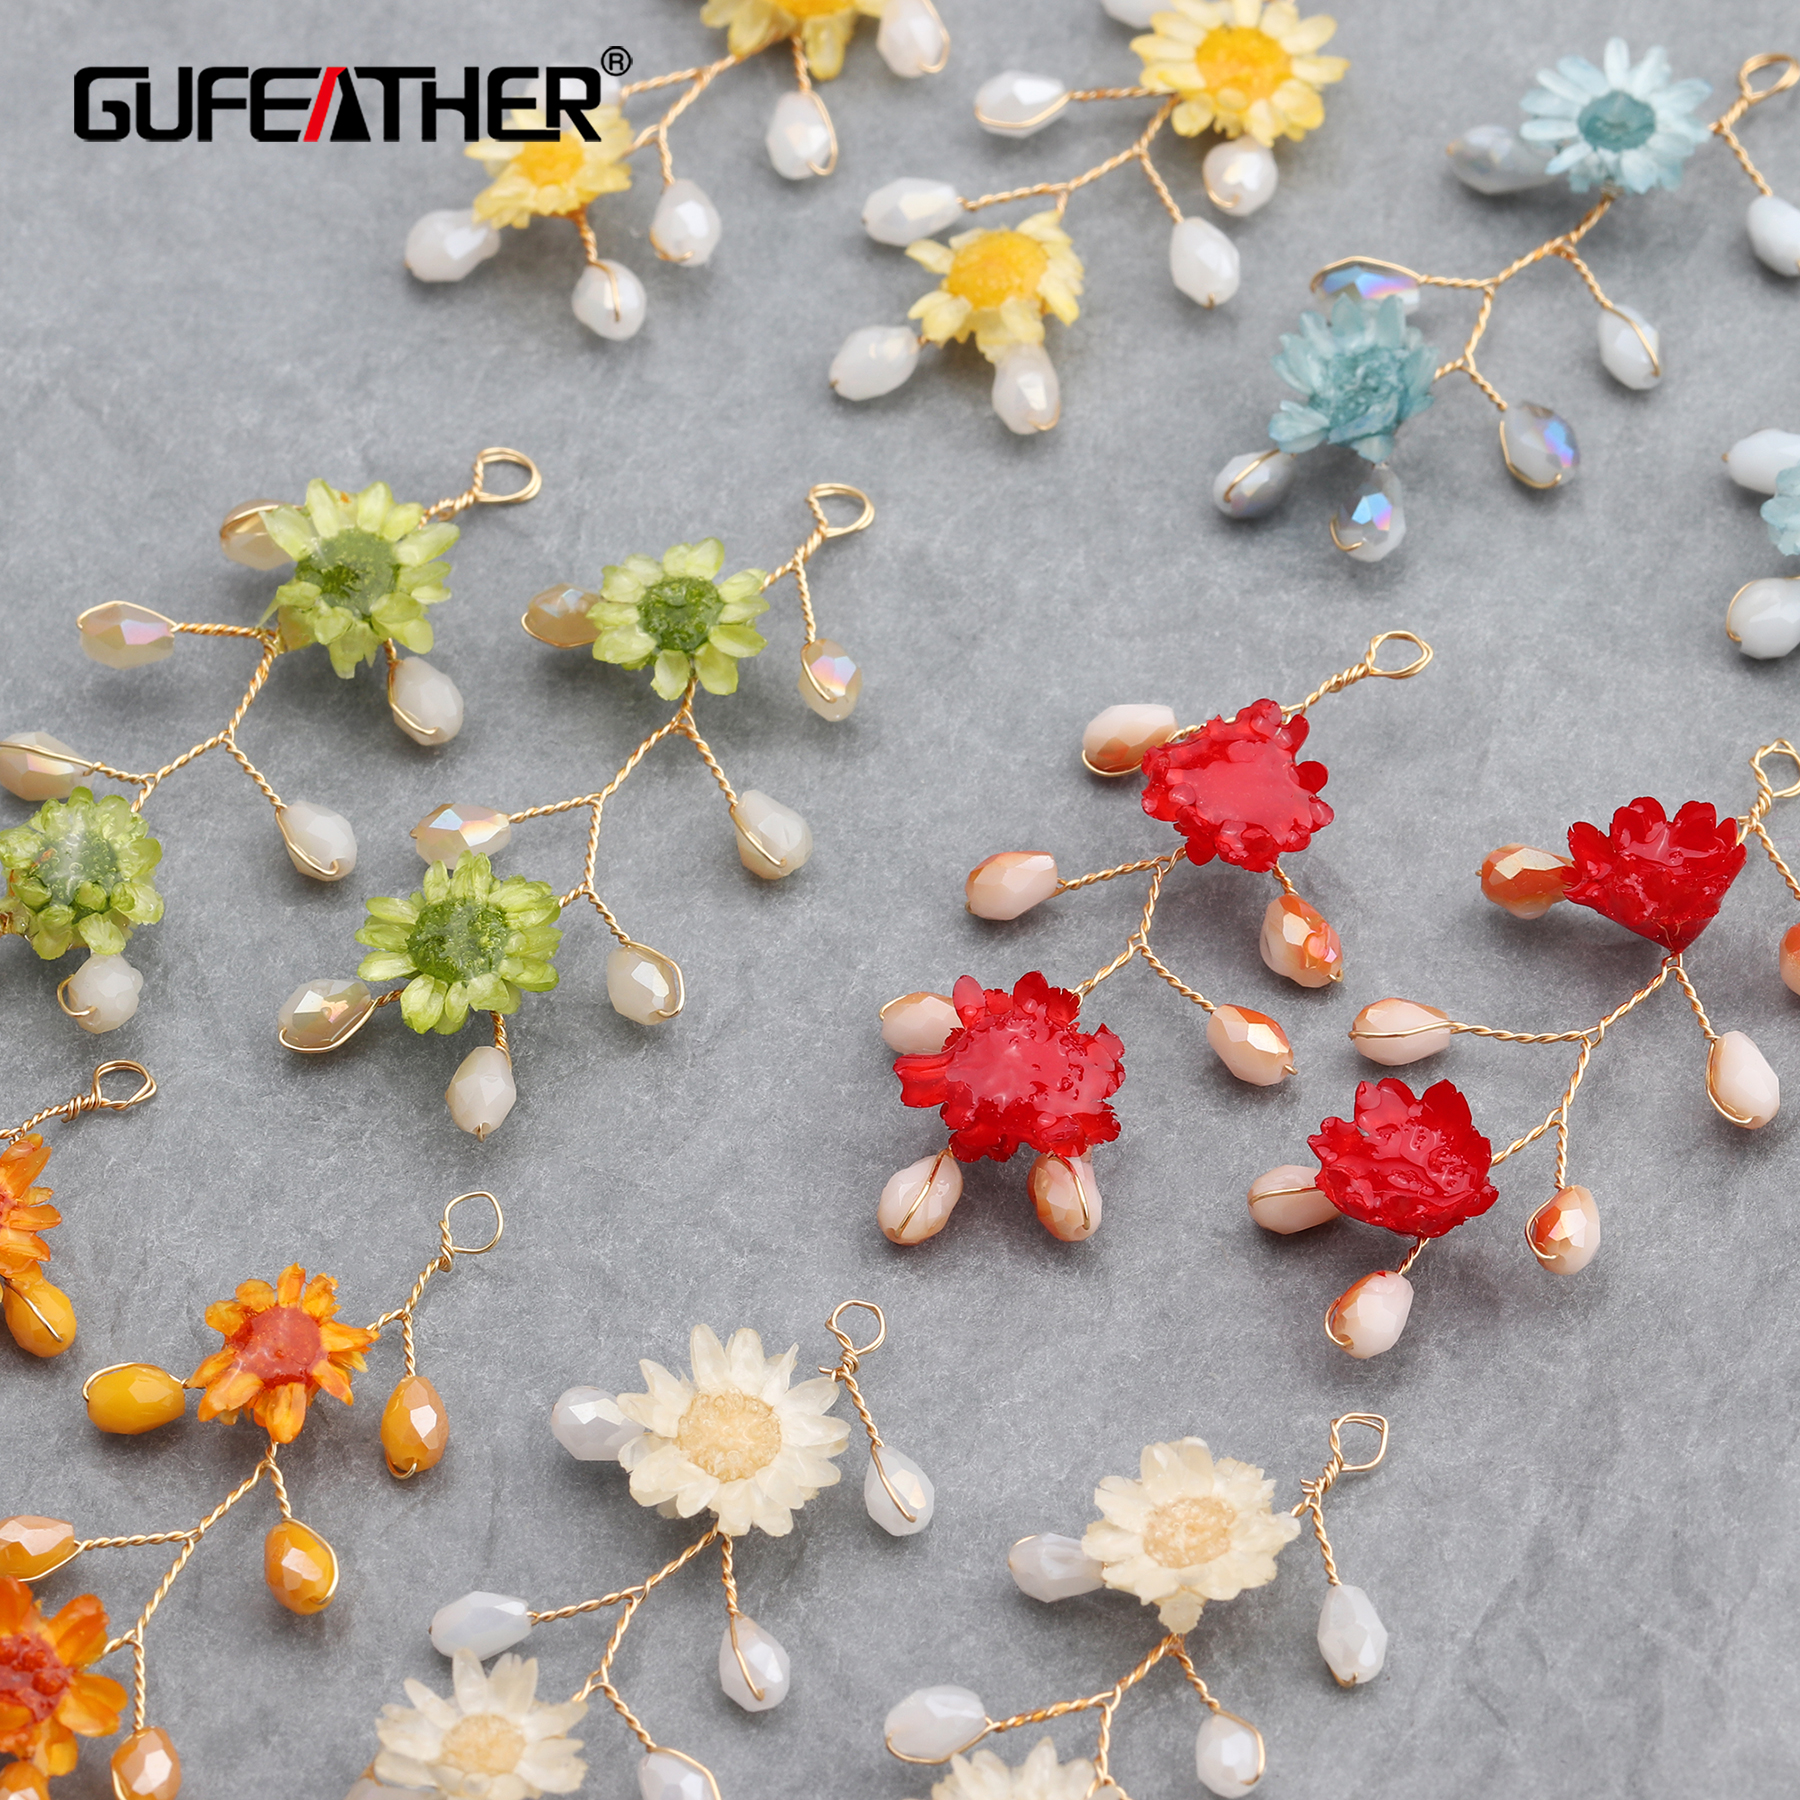 GUFEATHER M622,jewelry Accessories,18k Gold Plated,dried Flower,jewelry Findings,hand Made,jewelry Making,diy Earrings,6pcs/lot